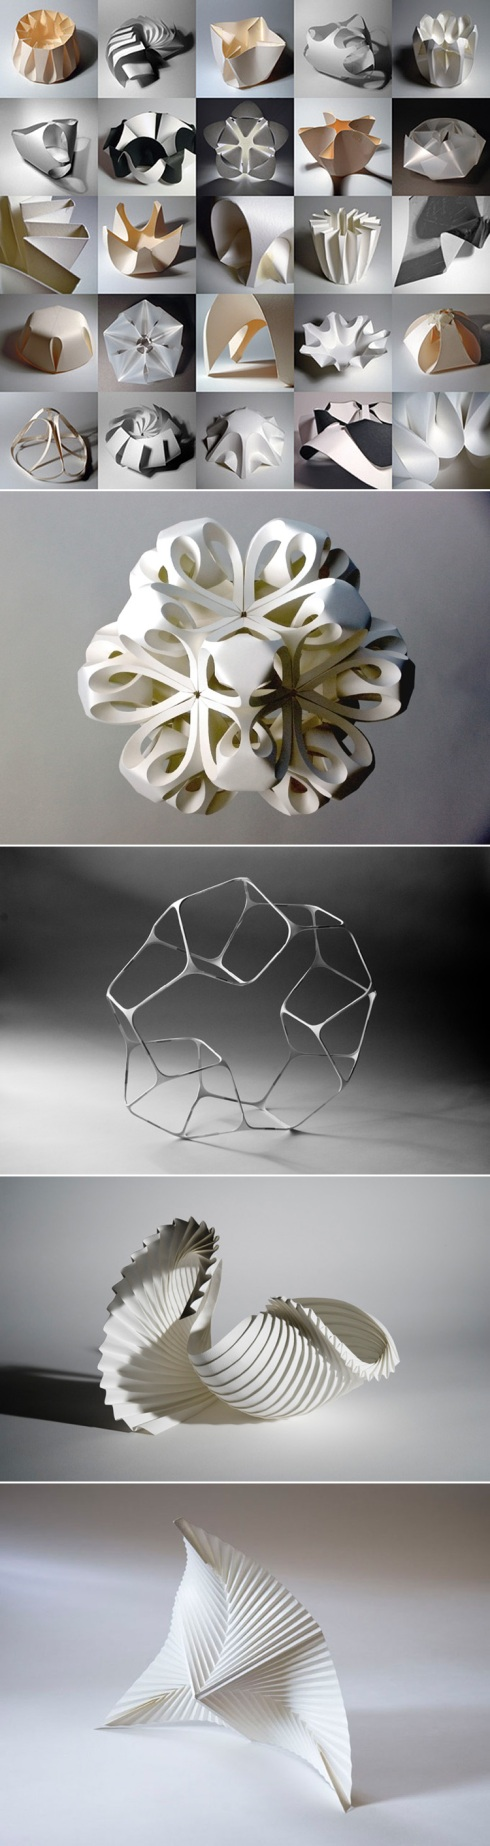 pleated paper sculptures, paper forms, art, contemporary